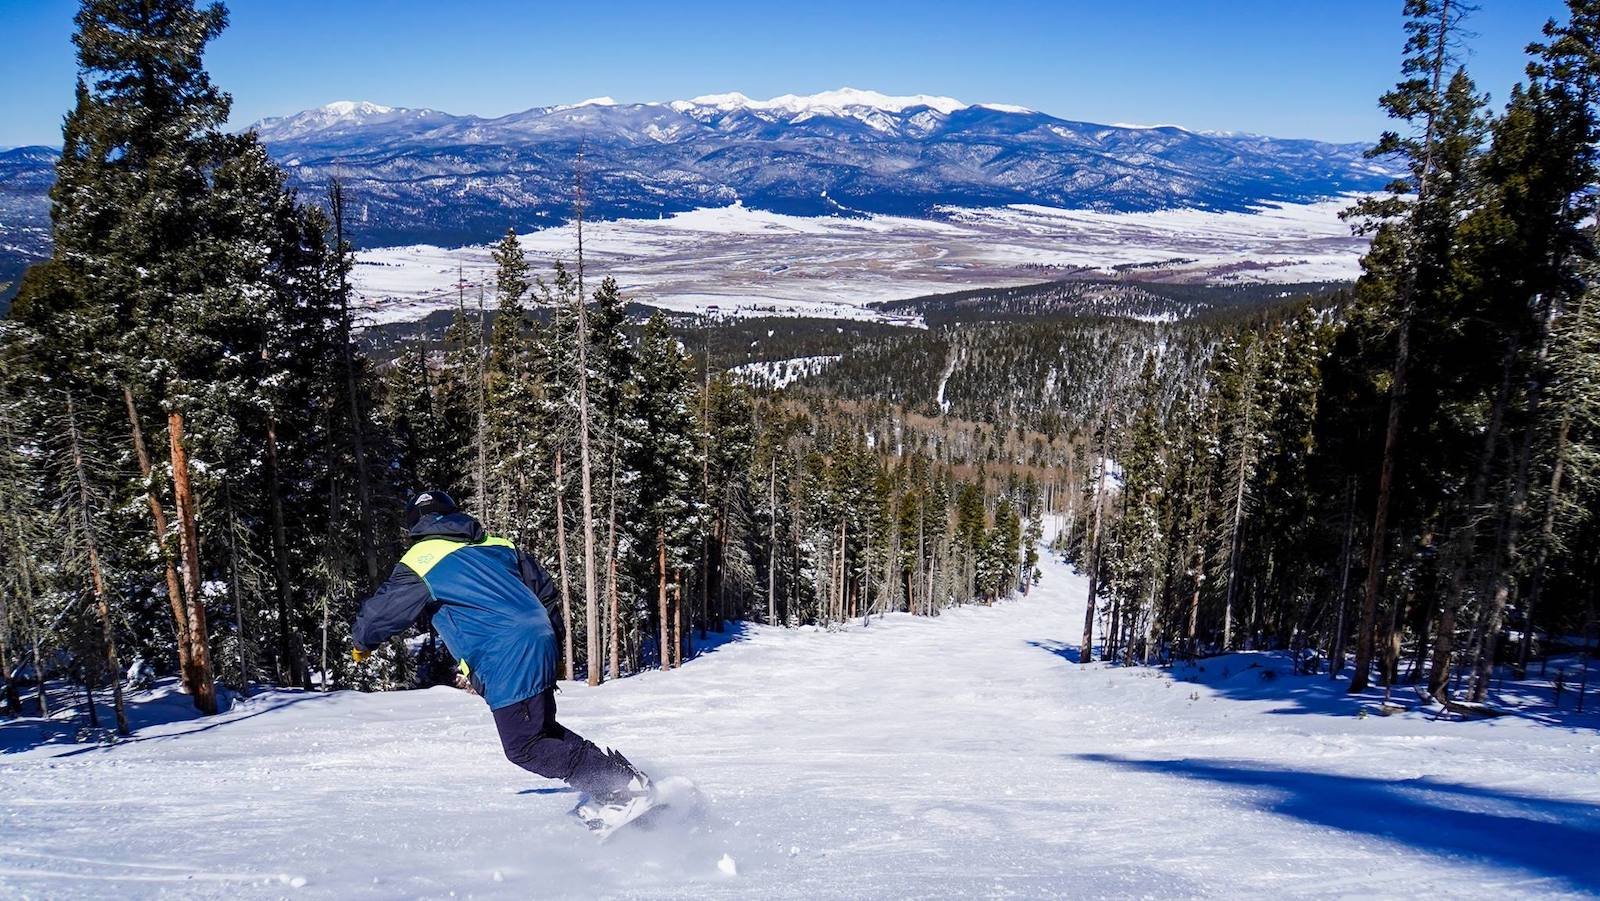 Image of a snowboarder hitting the slopes at Angel Fire Resort in New Mexico